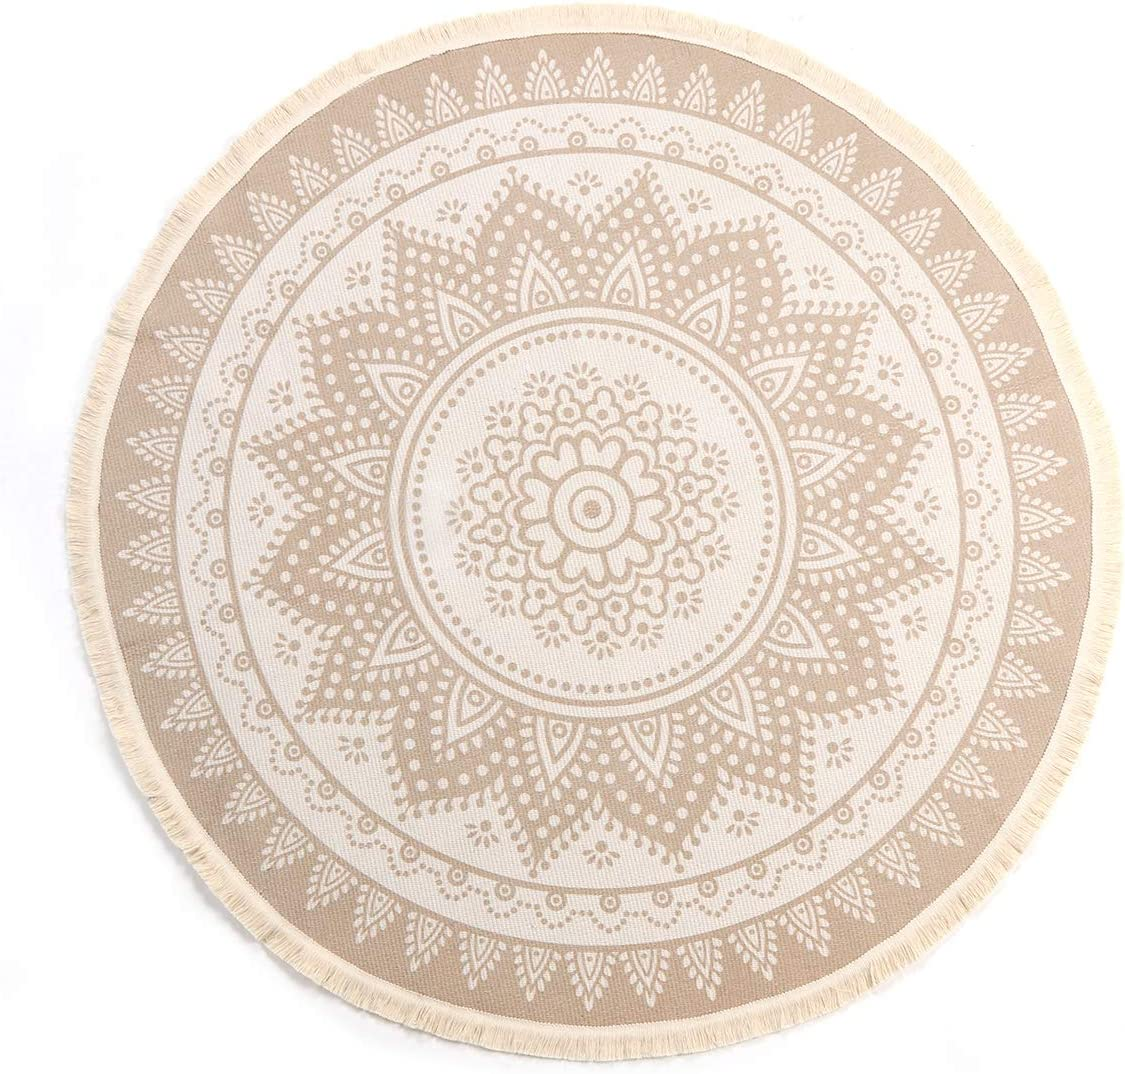 LEEVAN Round Area Rug,Hand Woven Cream Chic Bohemian Mandala Print Tassels Door Mat,Indoor Floor Area Mats Compatible Bedroom,Living Room,Children Playroom,Coffee, 4 Diameter